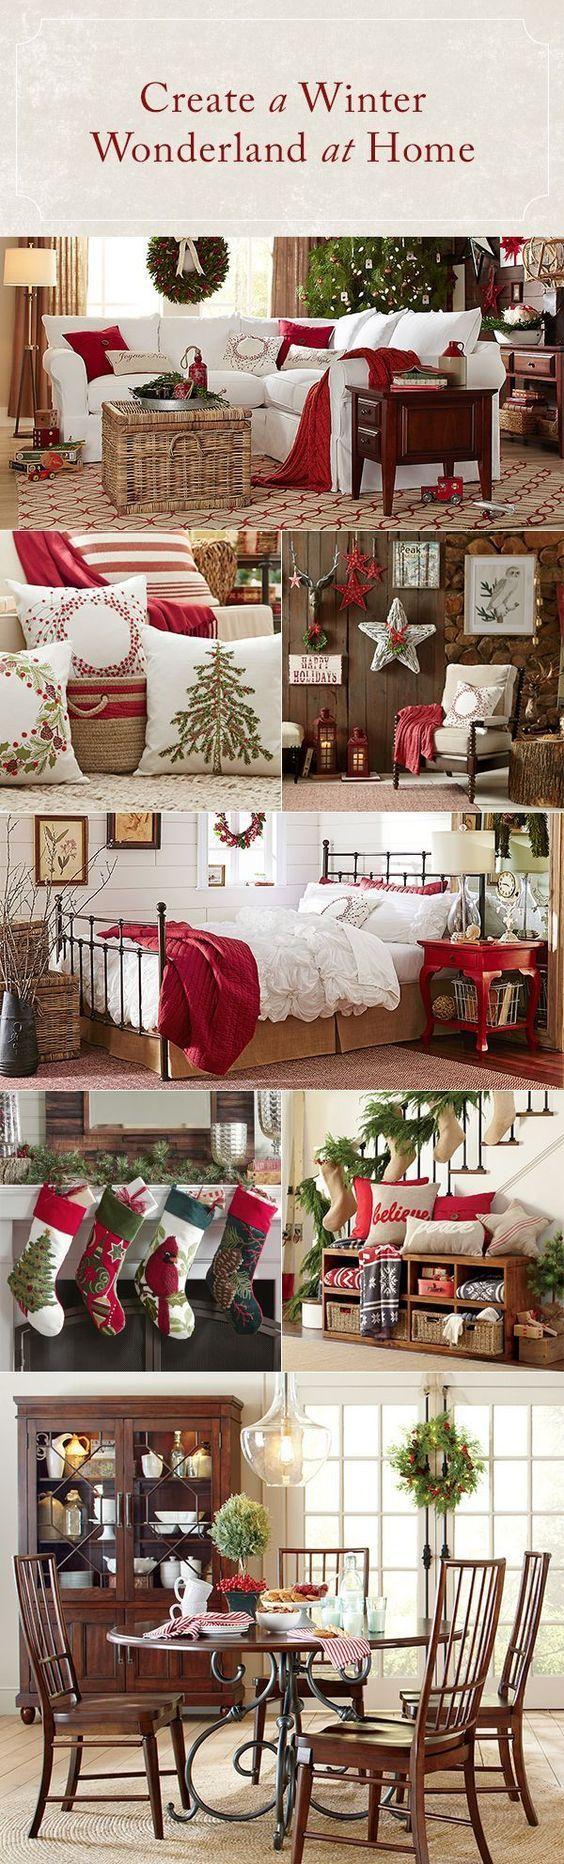 Simple decor switches are key when it comes to making holiday decorating a stress-free affair. Swap in accessories that have a festive color palette of red and green, embrace traditional motifs and designs, and don't forget to include plenty of cozy layers. From pillows and throws to stockings and wreaths, Birch Lane's Holiday Shop has everything you need to get your home in the spirit — and all orders over $49 ship free! #over_the_fireplace_decor